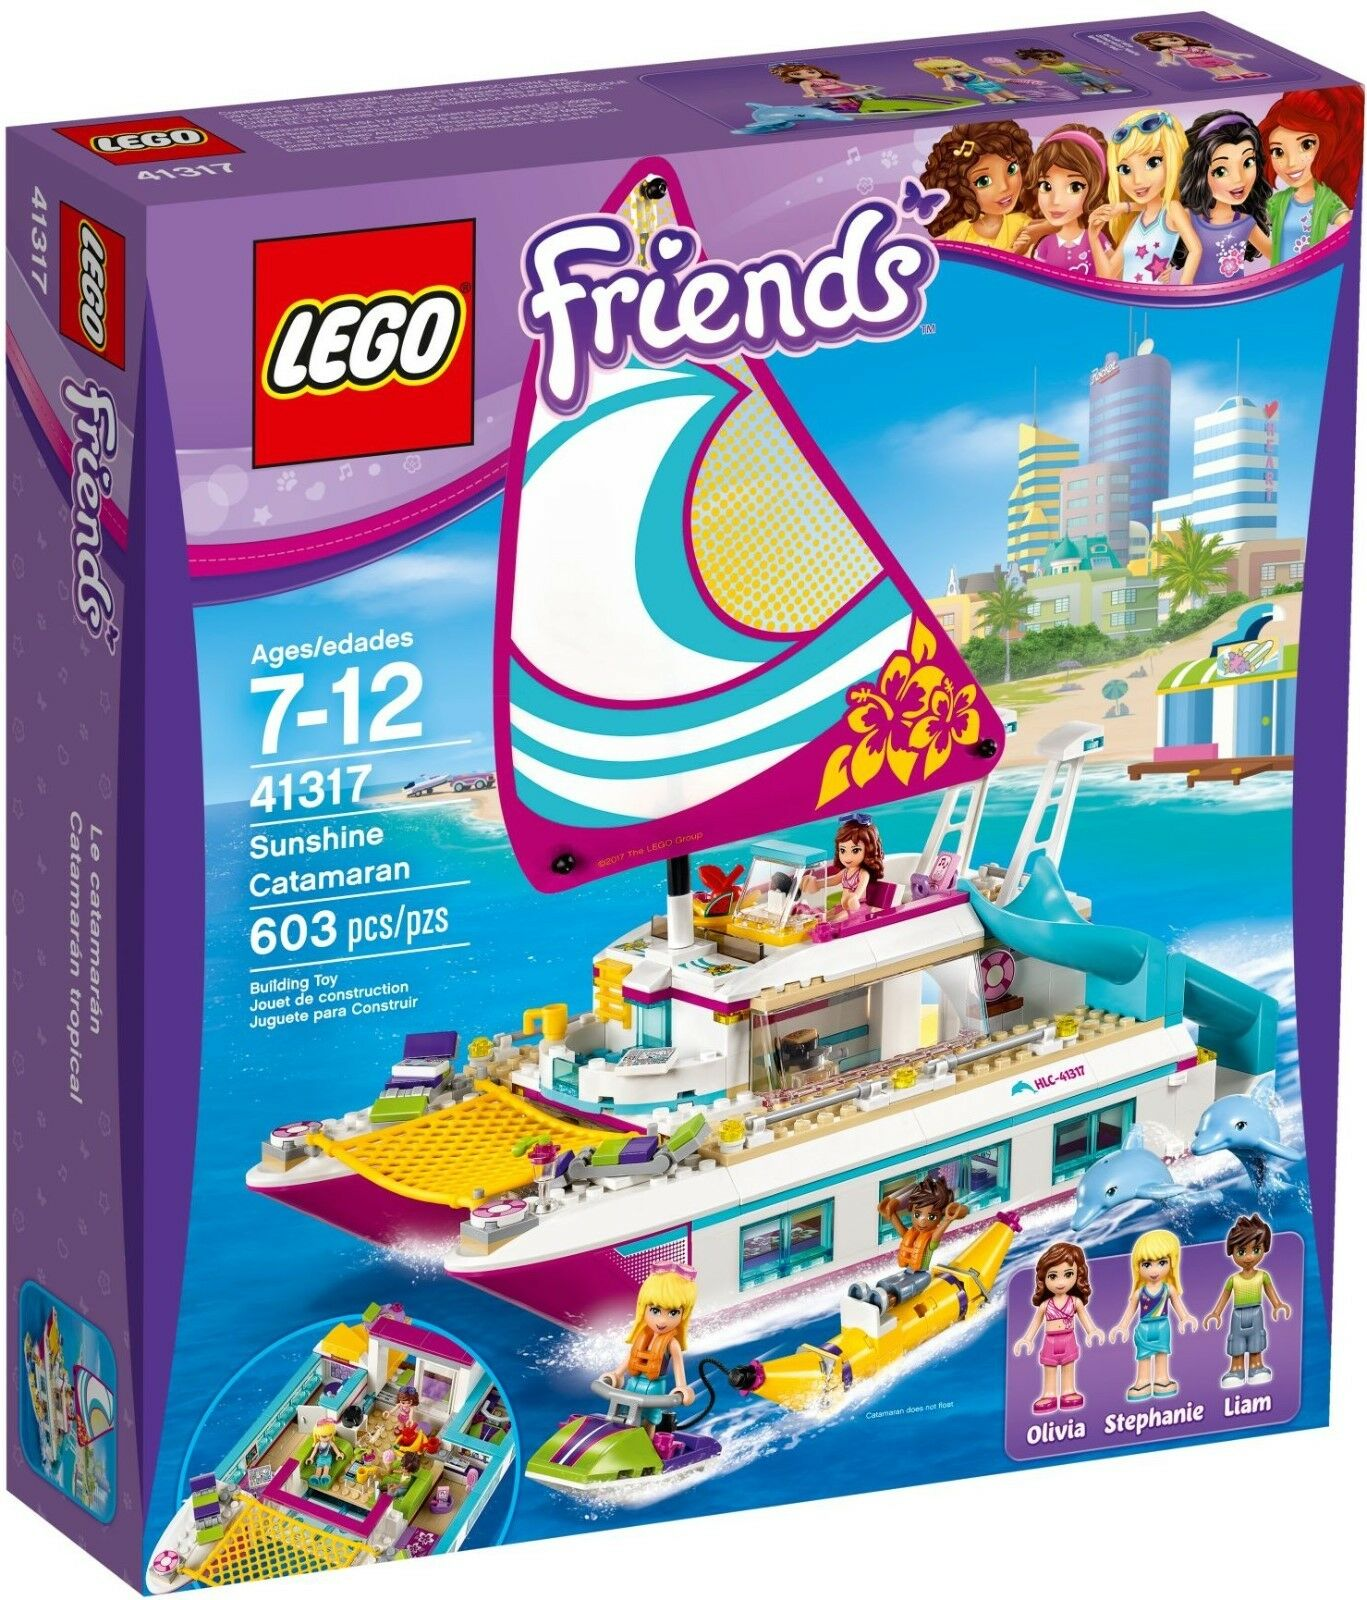 LEGO Friends Sunshine CATAMARANO Playset - 41317-Nuovo con Scatola - 1st Class Post